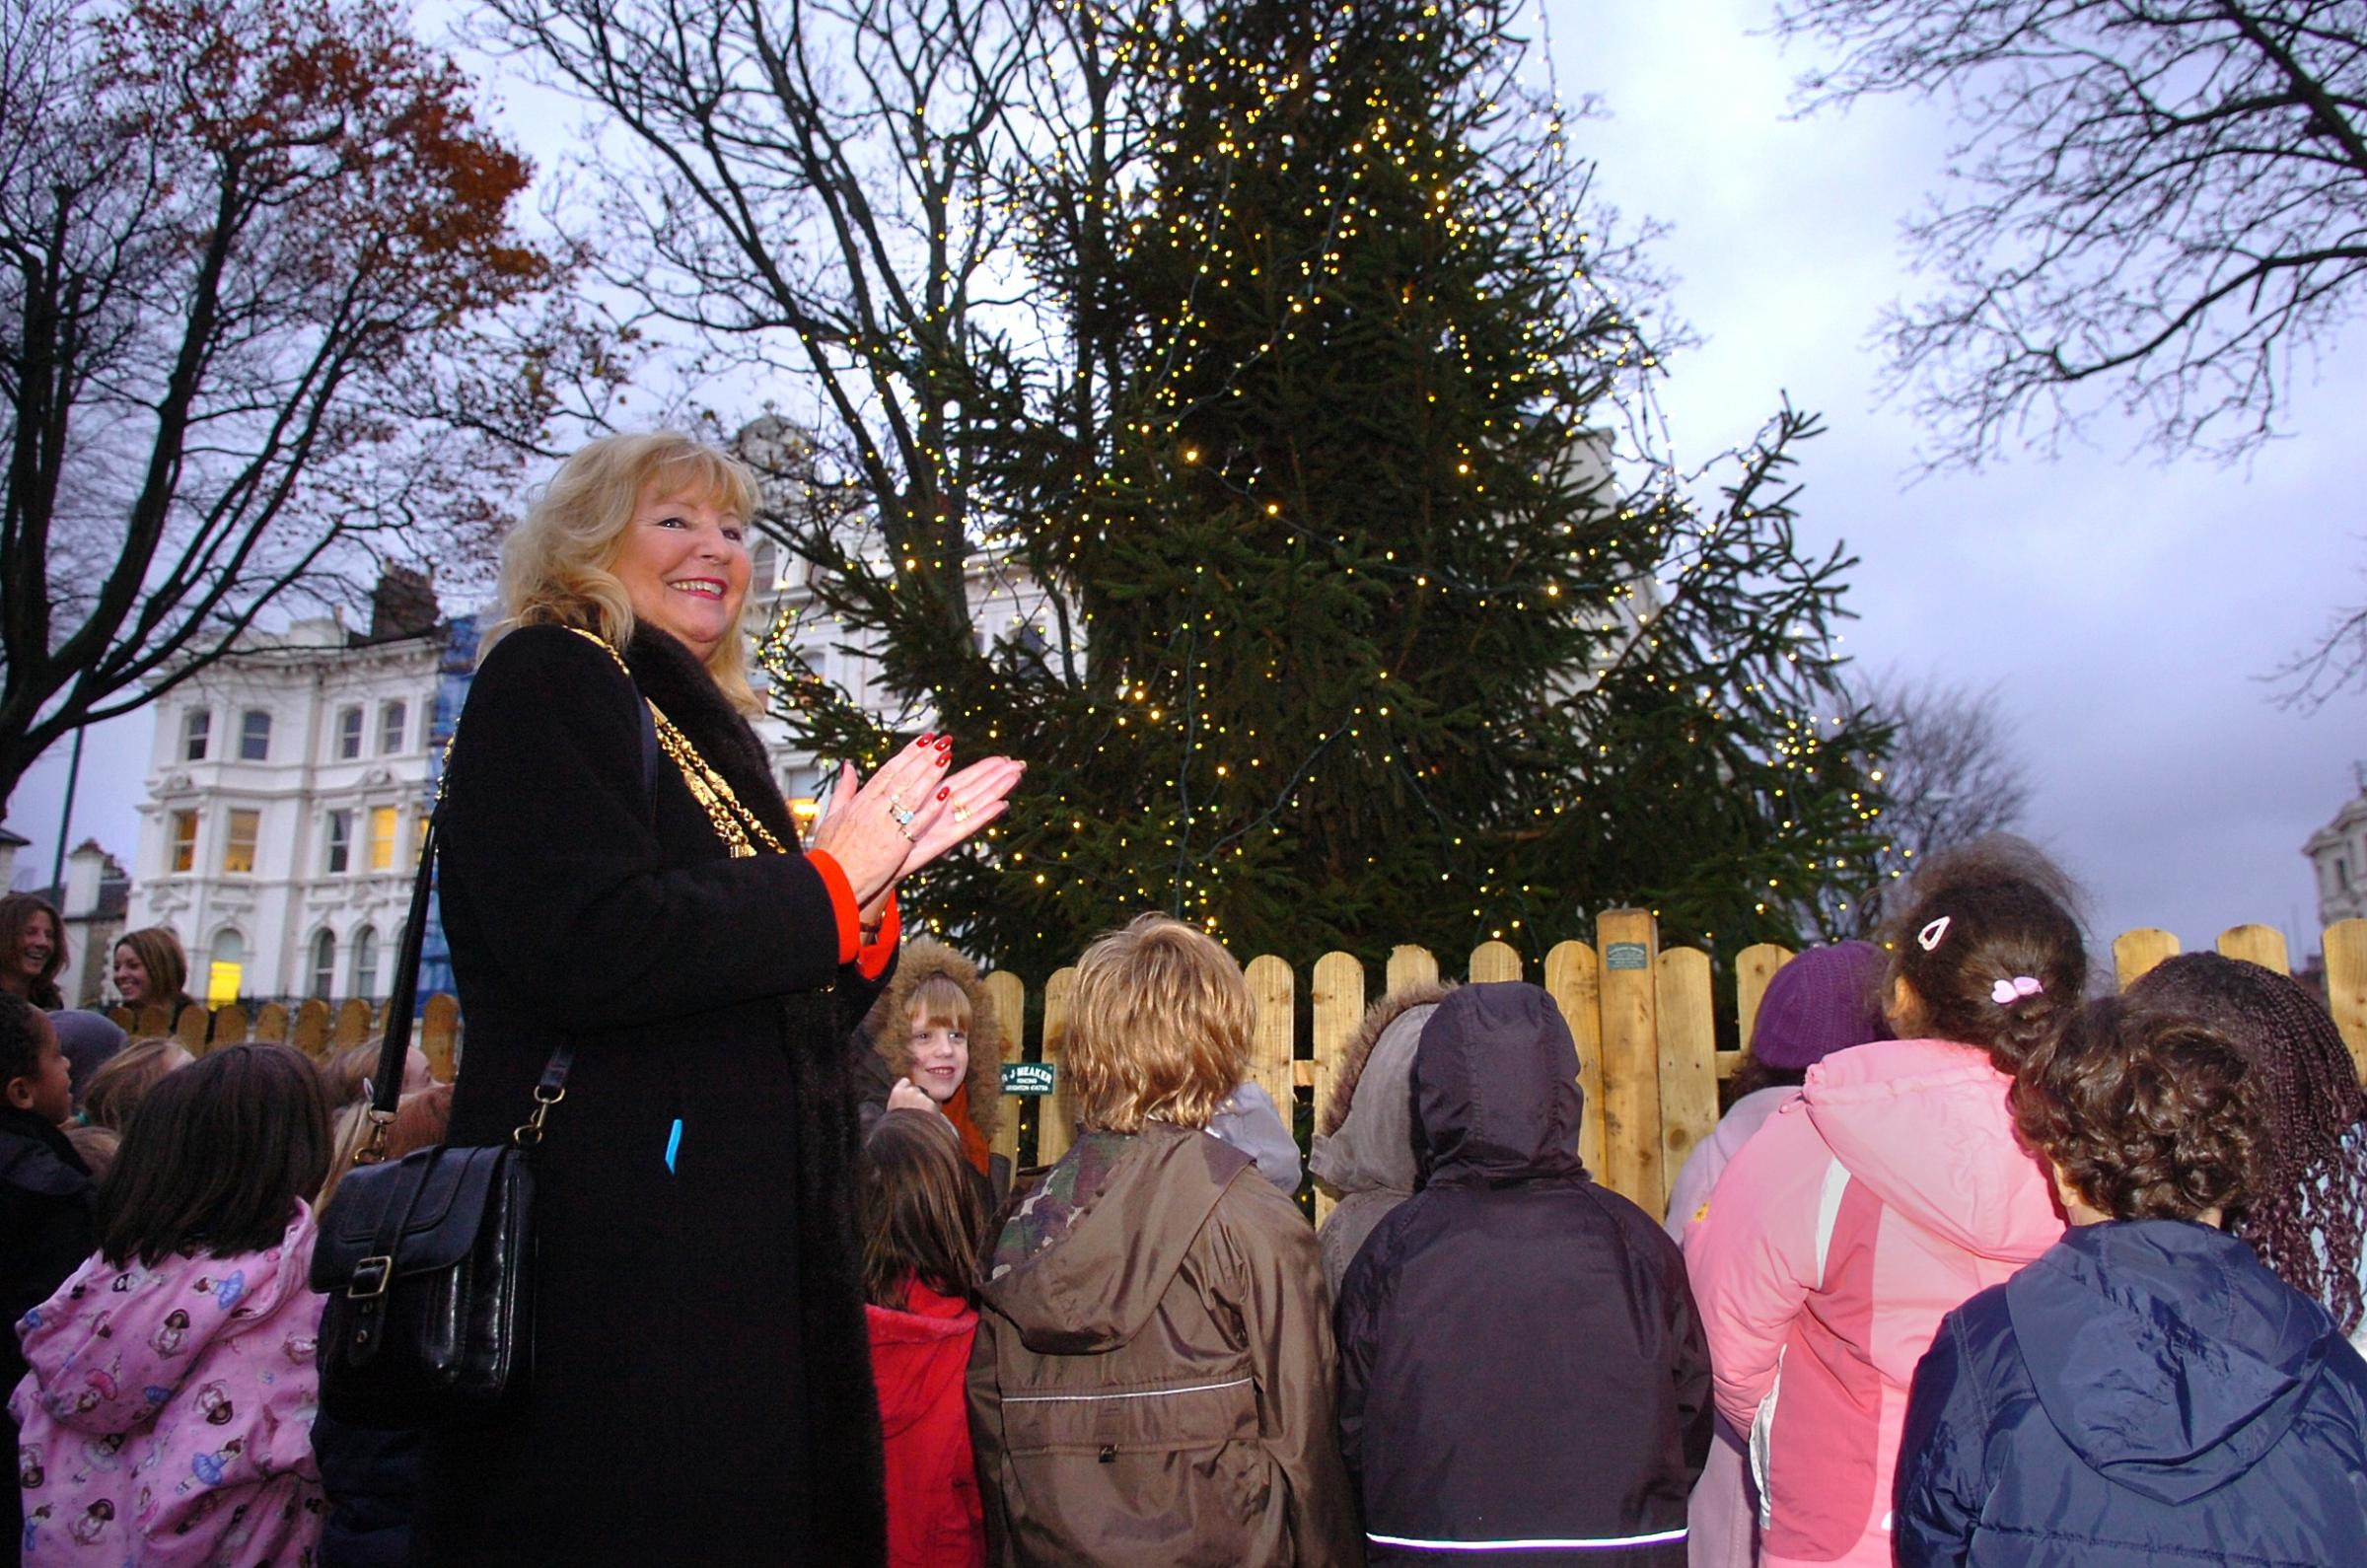 Children's Palmeira Square Christmas switch-on saved from health and safety ban